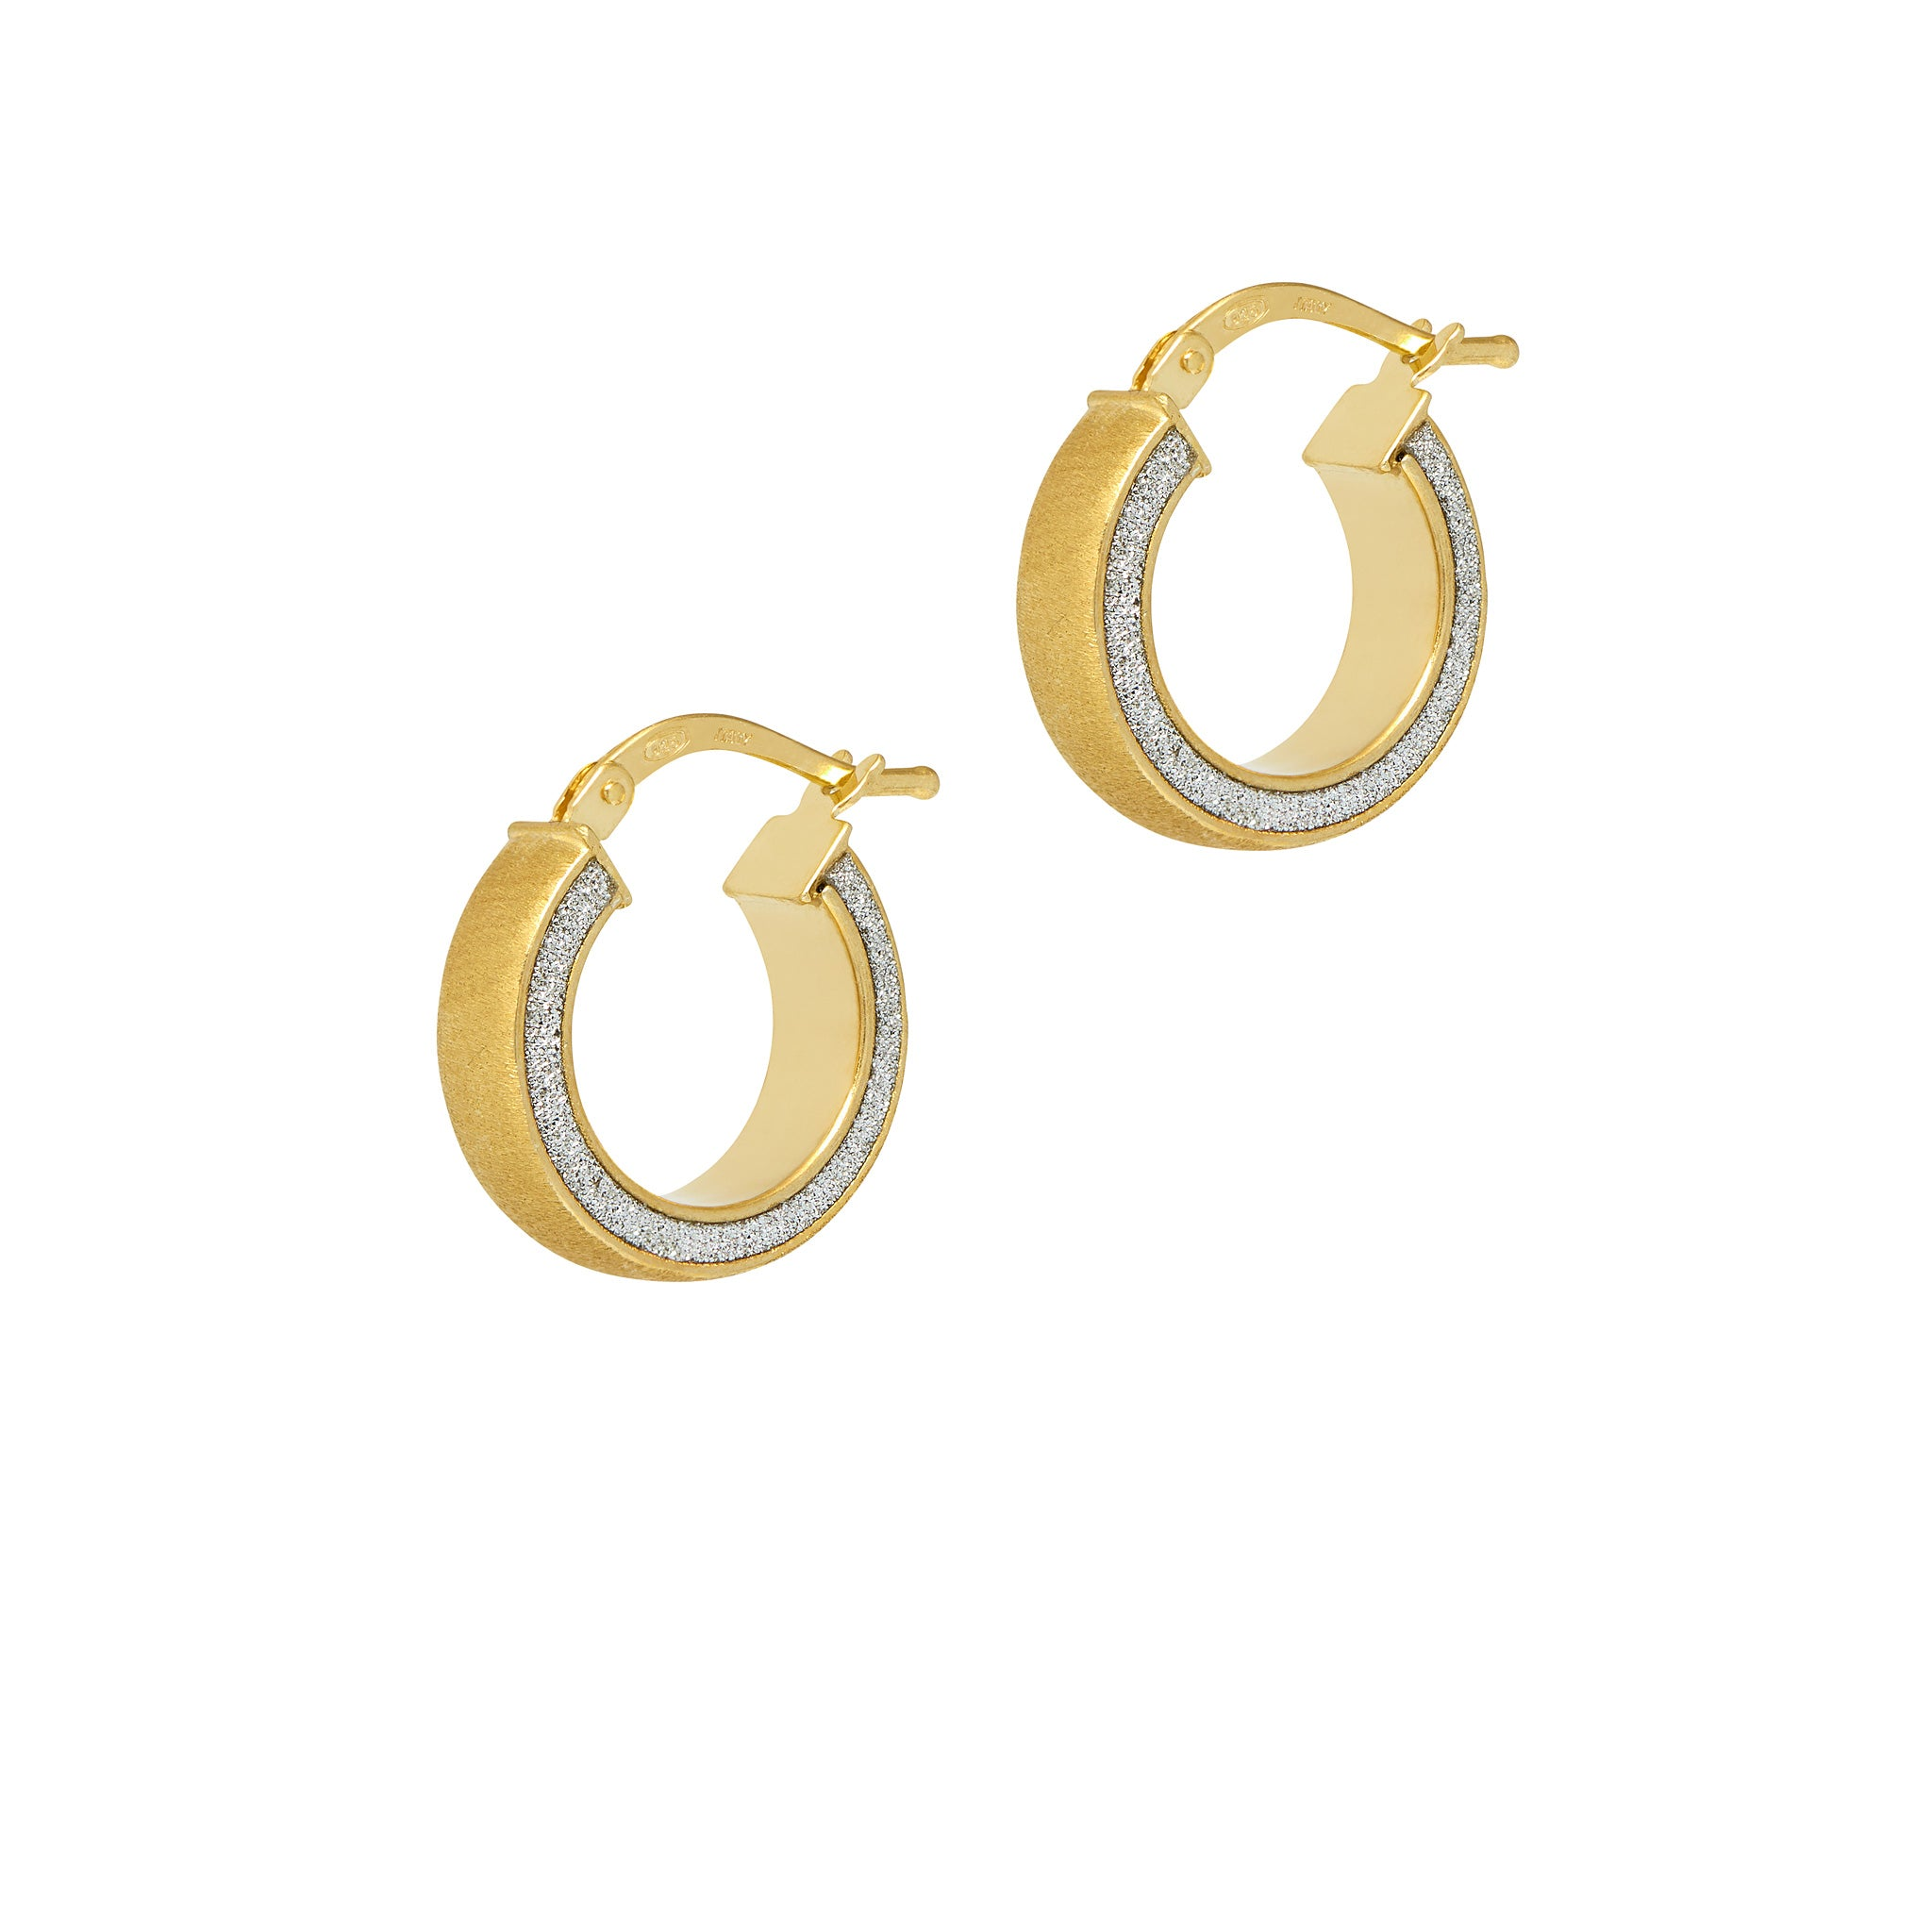 La SATINA GLITTER Huggies - The Hoop Station 925 Sterling Silver Hoop Earrings Gold Huggies